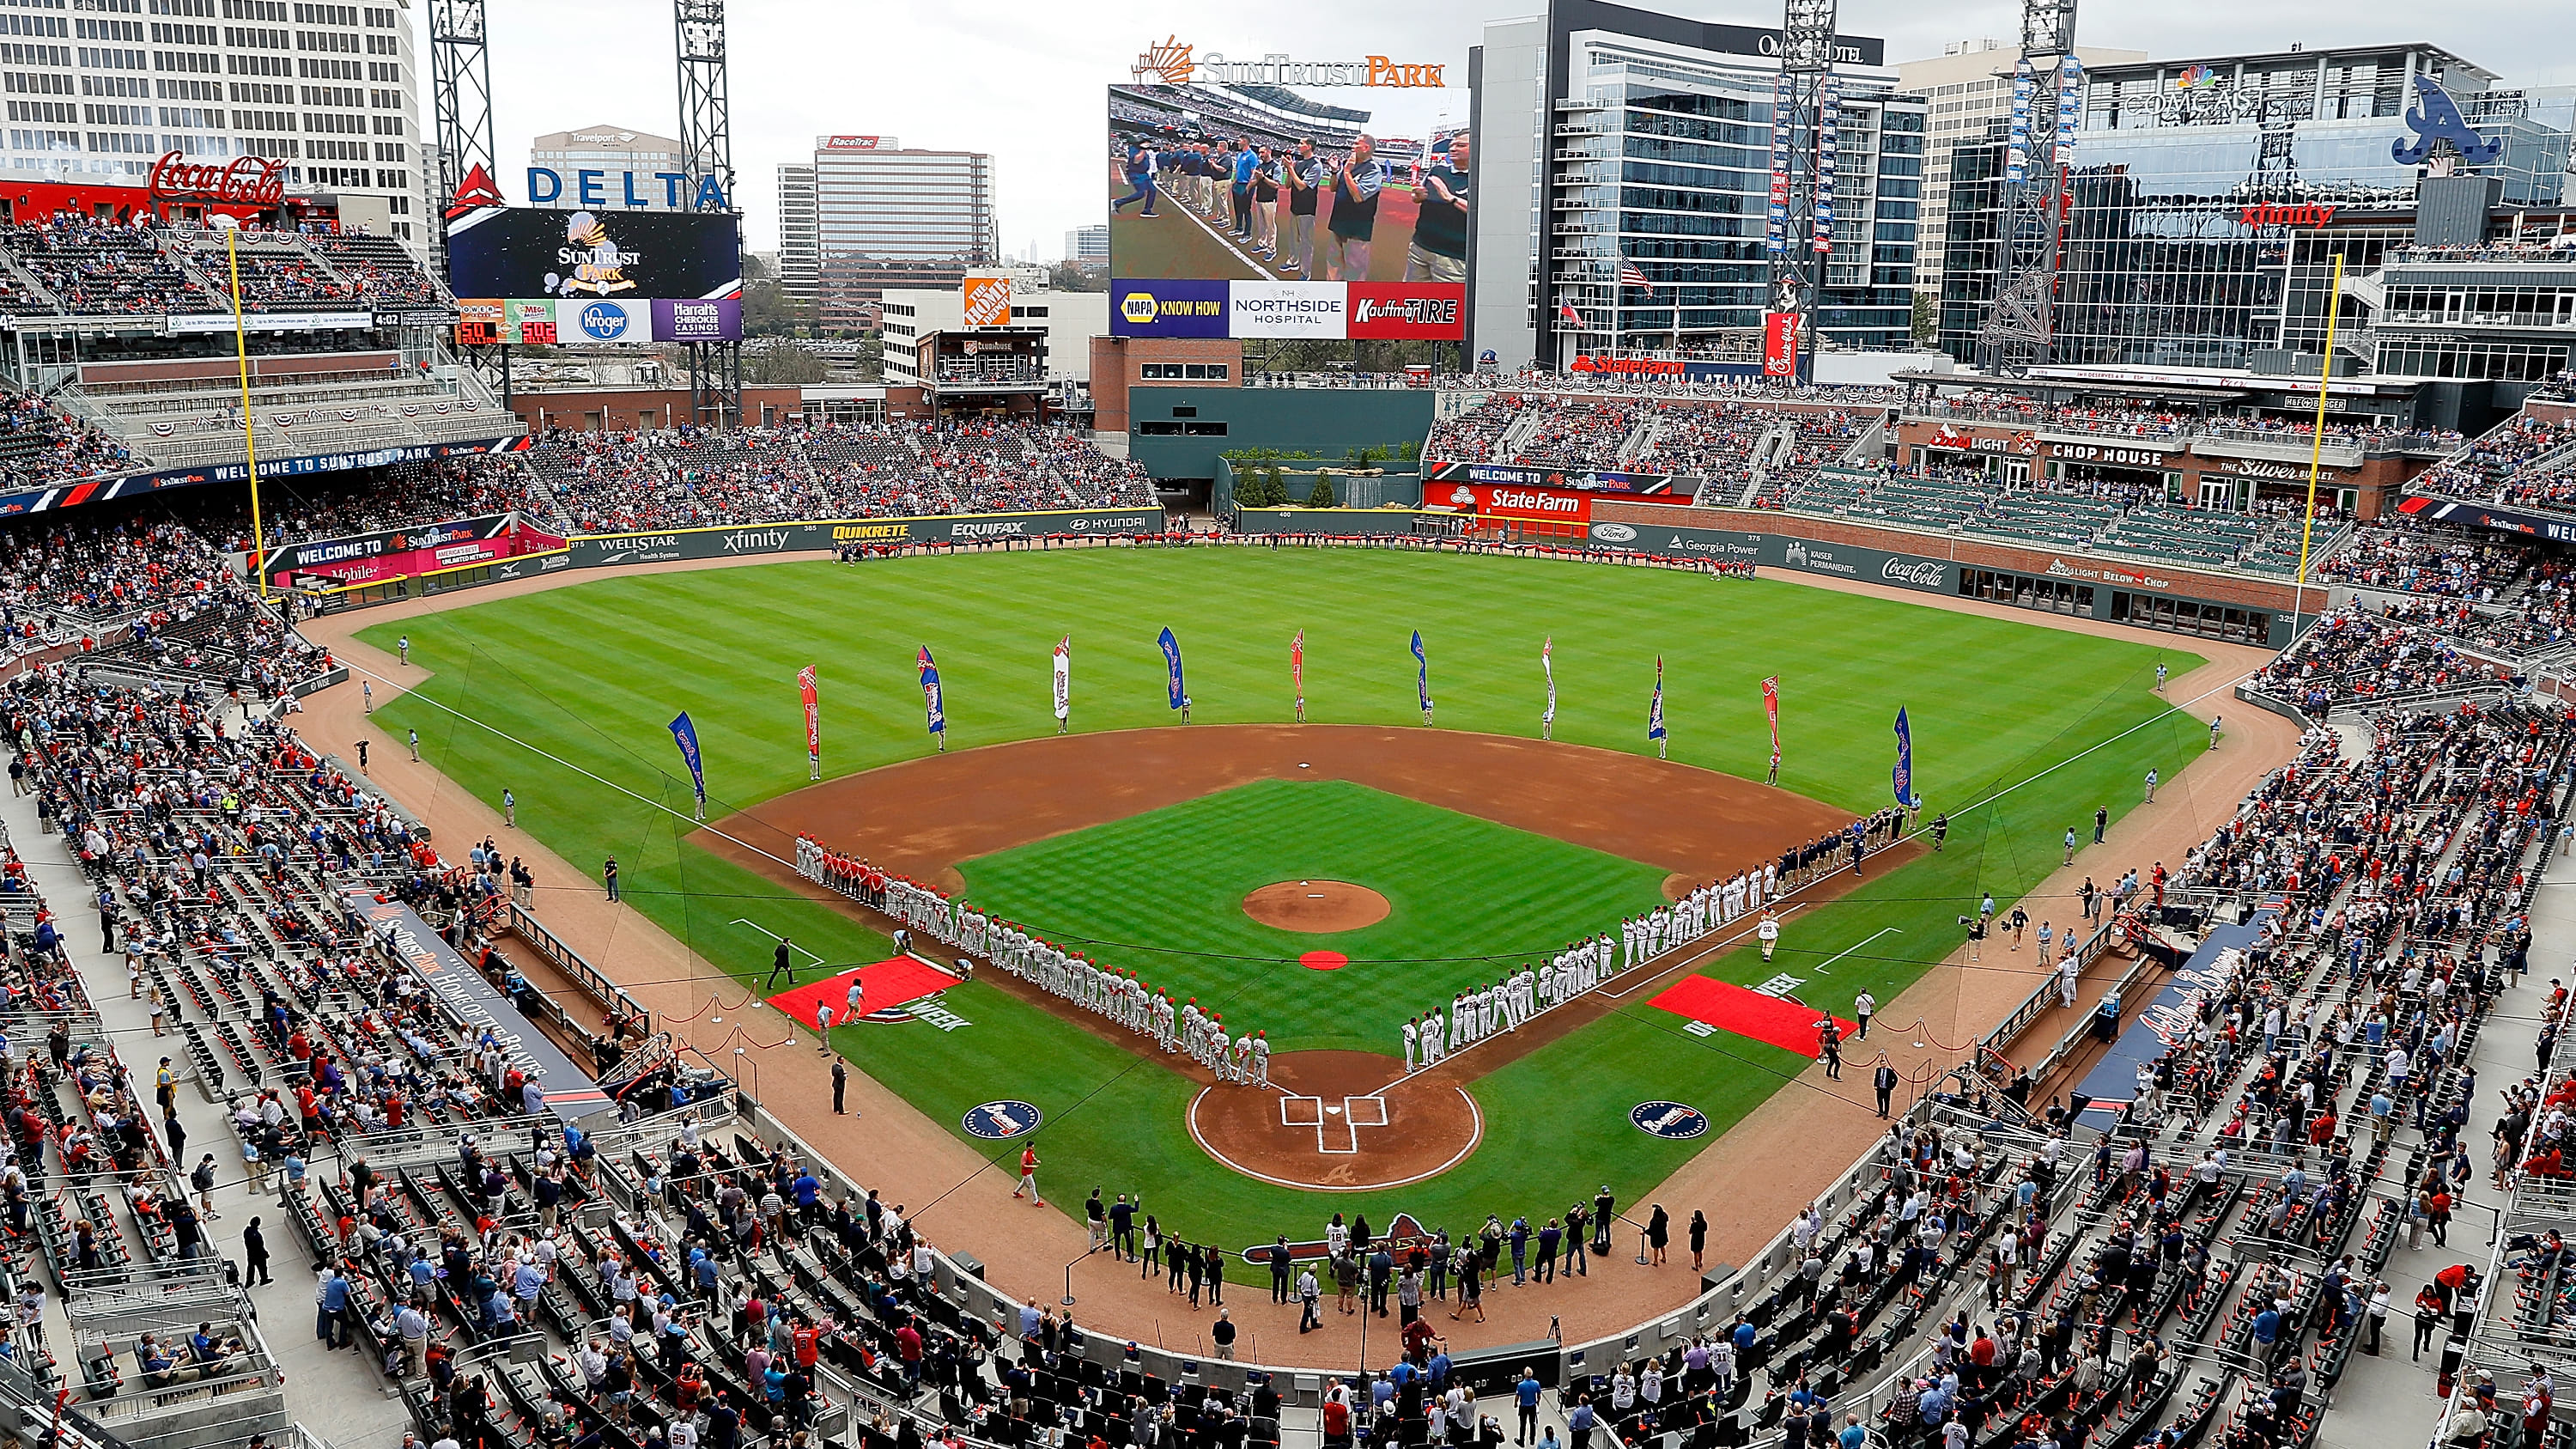 ATLANTA, GA - MARCH 29:  A general view of SunTrust Park prior to the game between the Atlanta Braves and the Philadelphia Phillies on March 29, 2018 in Atlanta, Georgia.  (Photo by Kevin C. Cox/Getty Images)